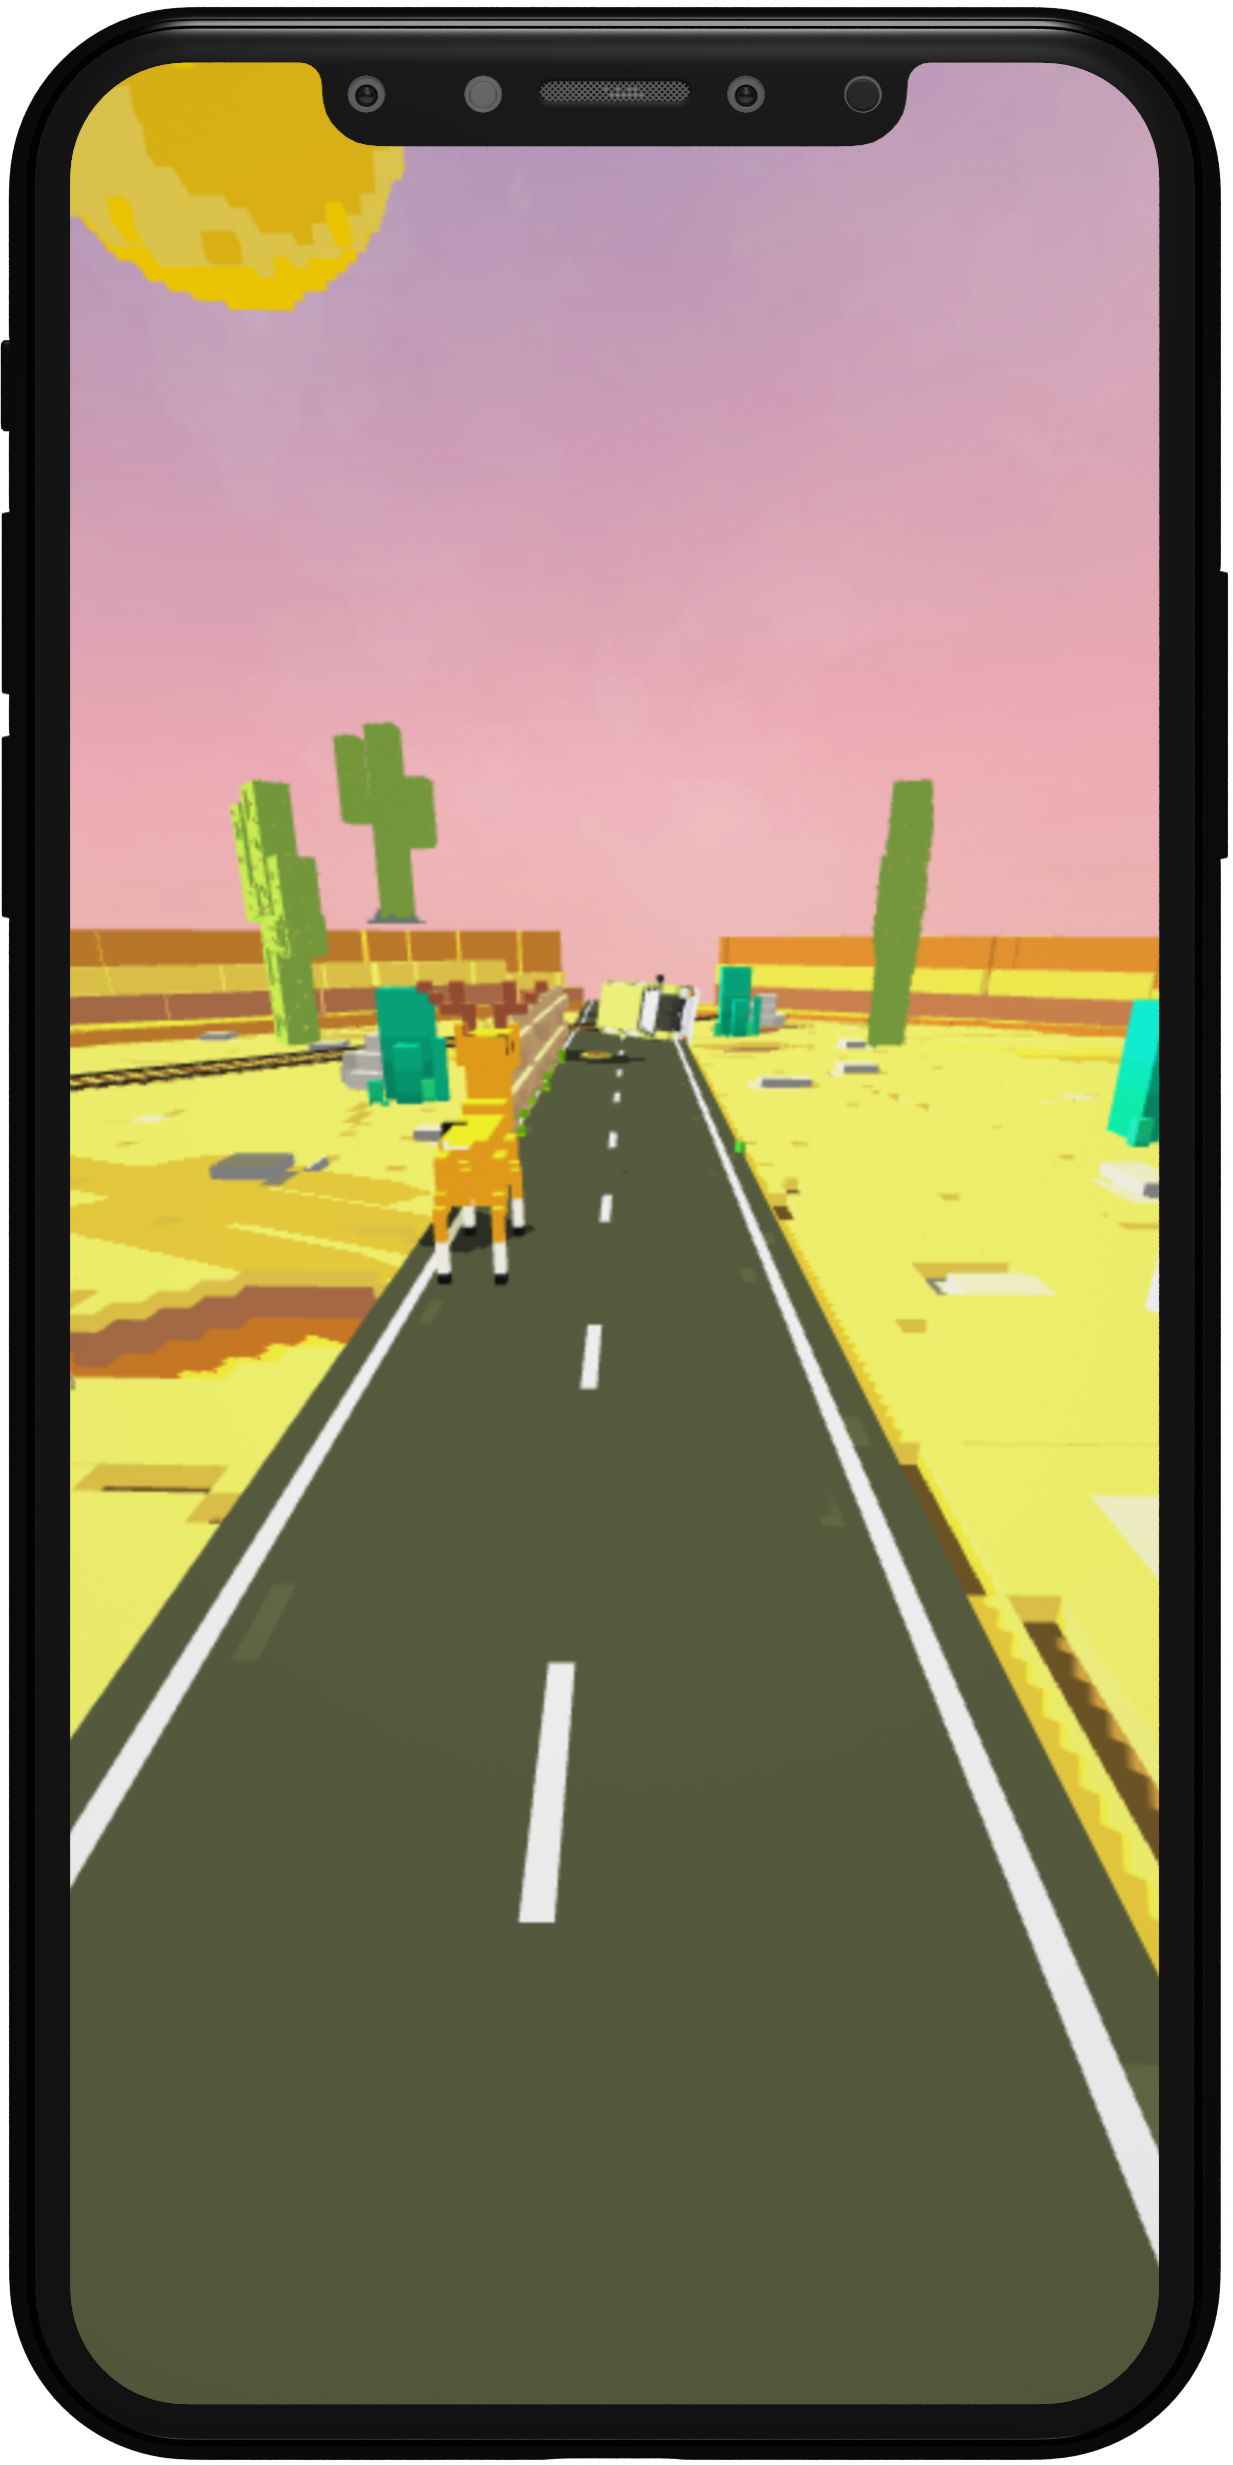 This game is full developed by Jacobs Development, including art, programming, and level design.